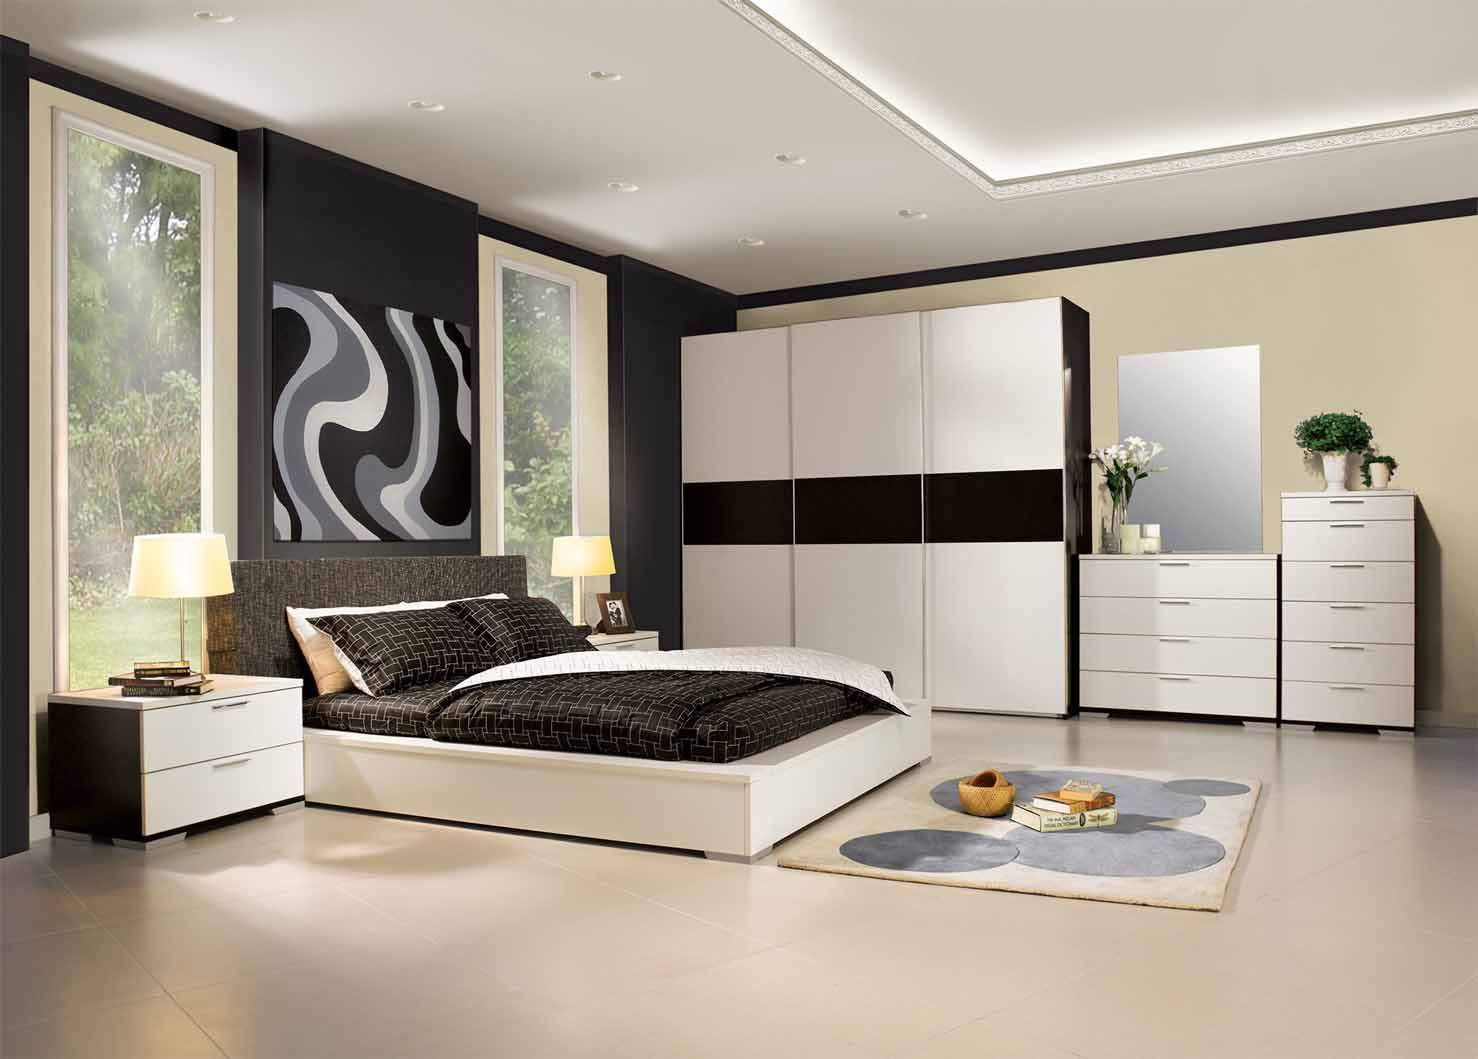 Wallpapers Designs For Home Interiors loopelecom 1478x1059